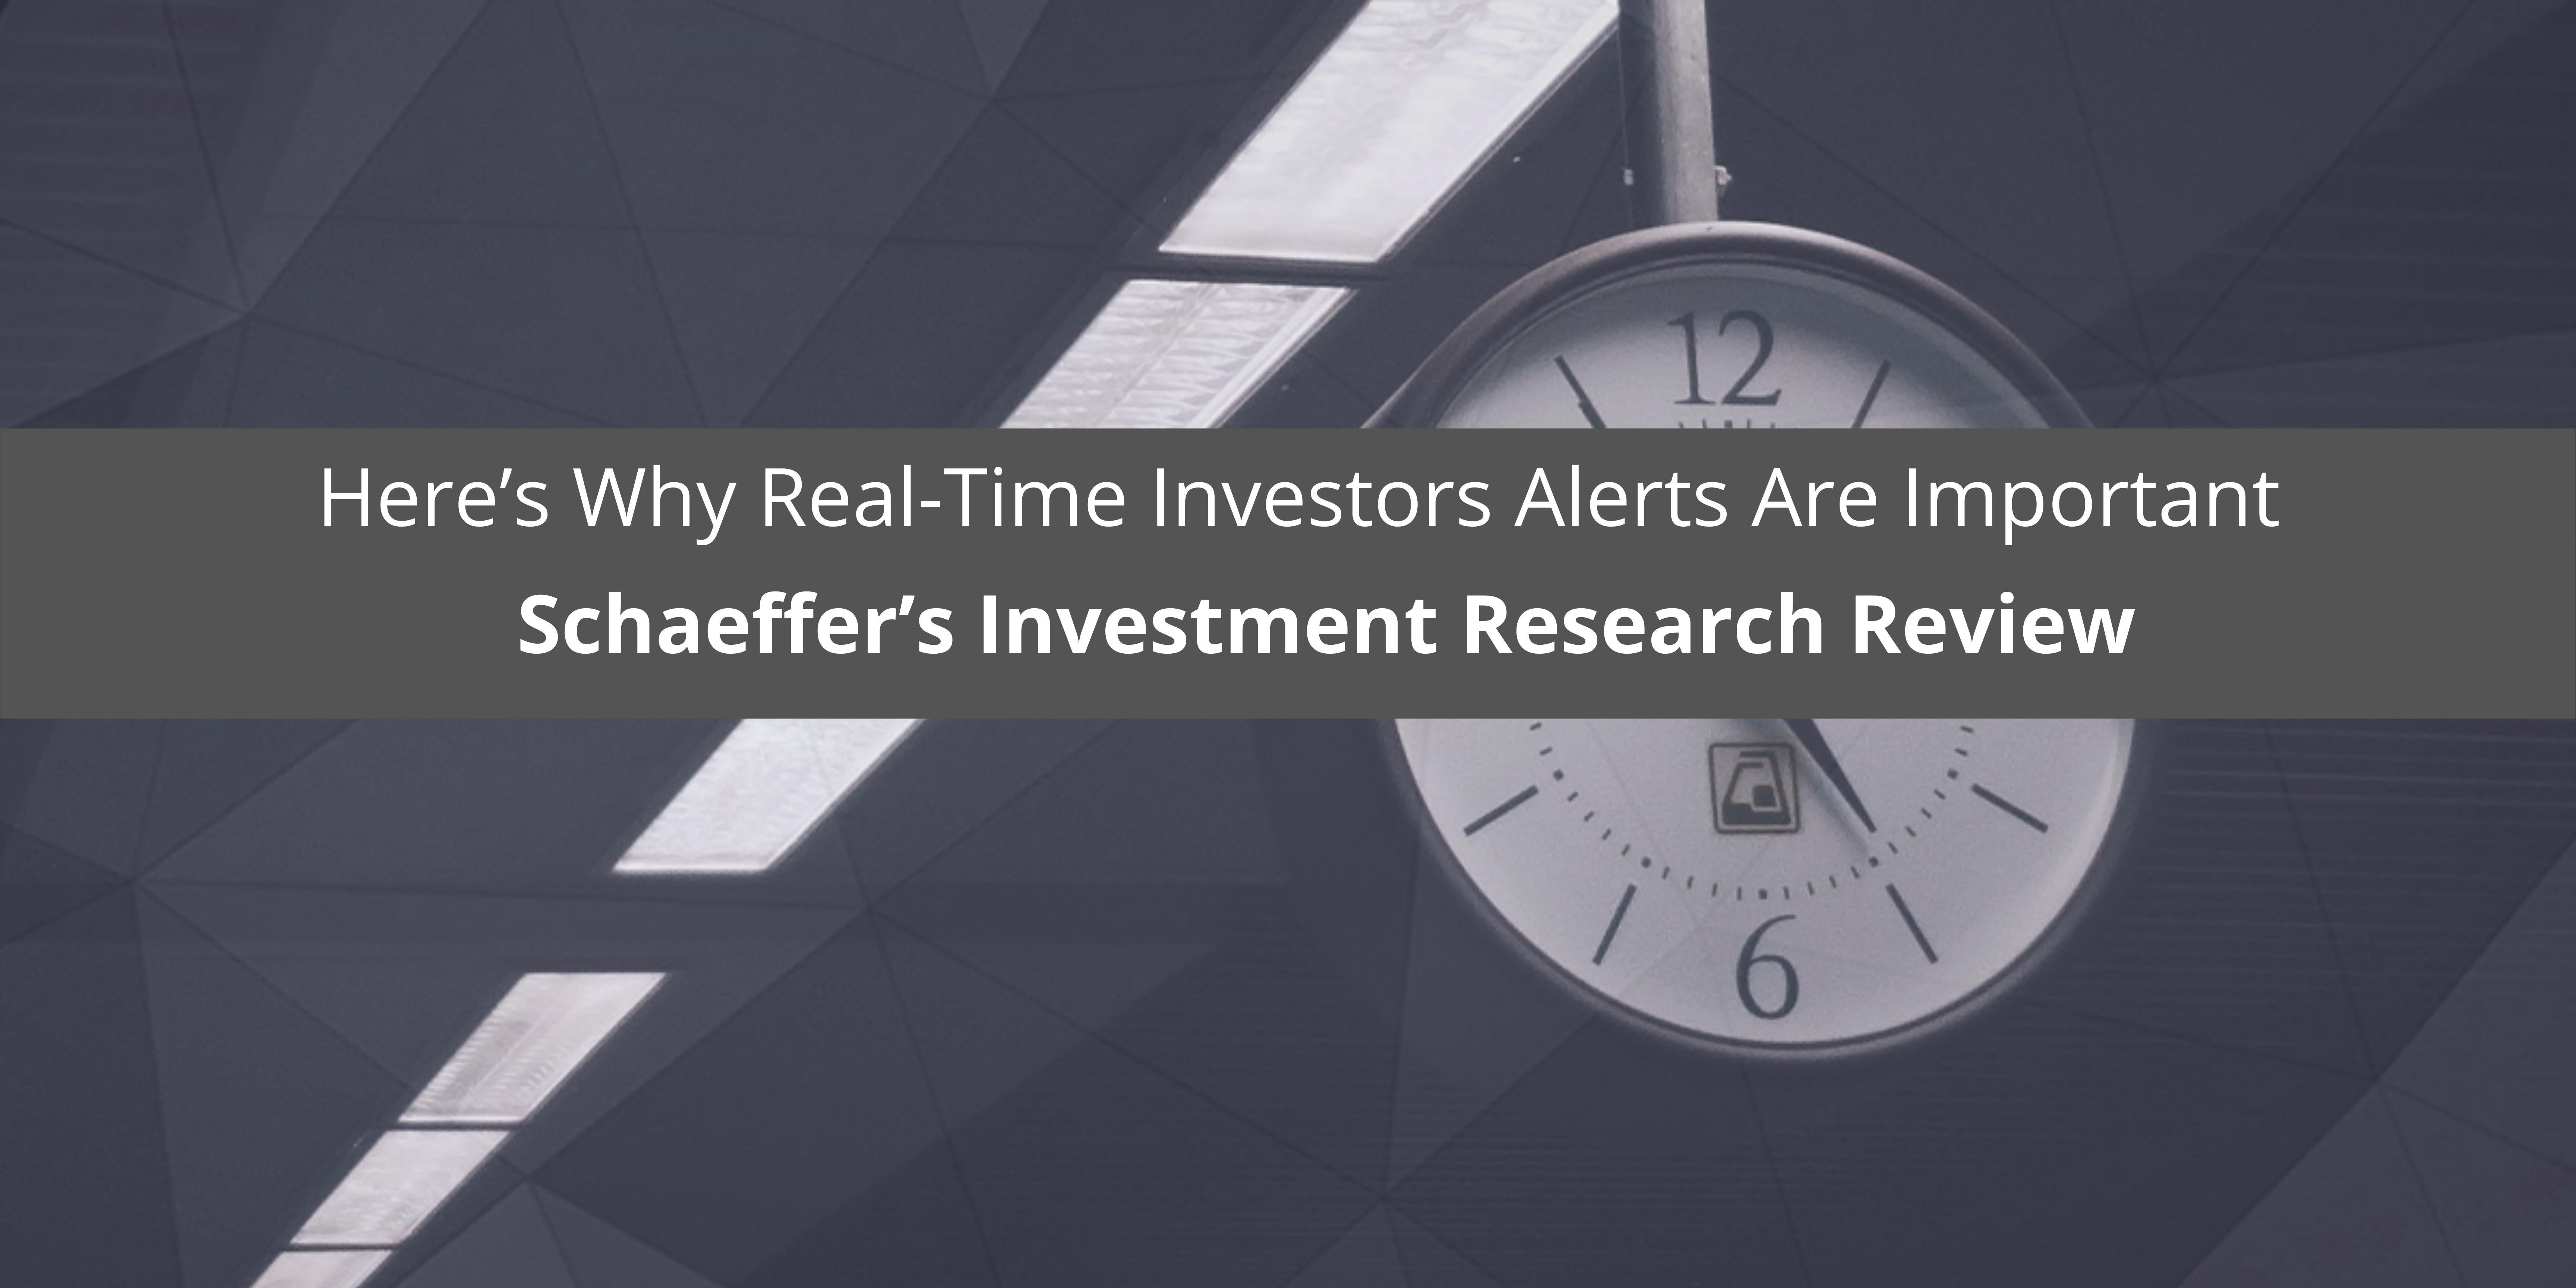 Schaeffer's Investment Research Review: Here's Why Real-Time Investors Alerts Are Important